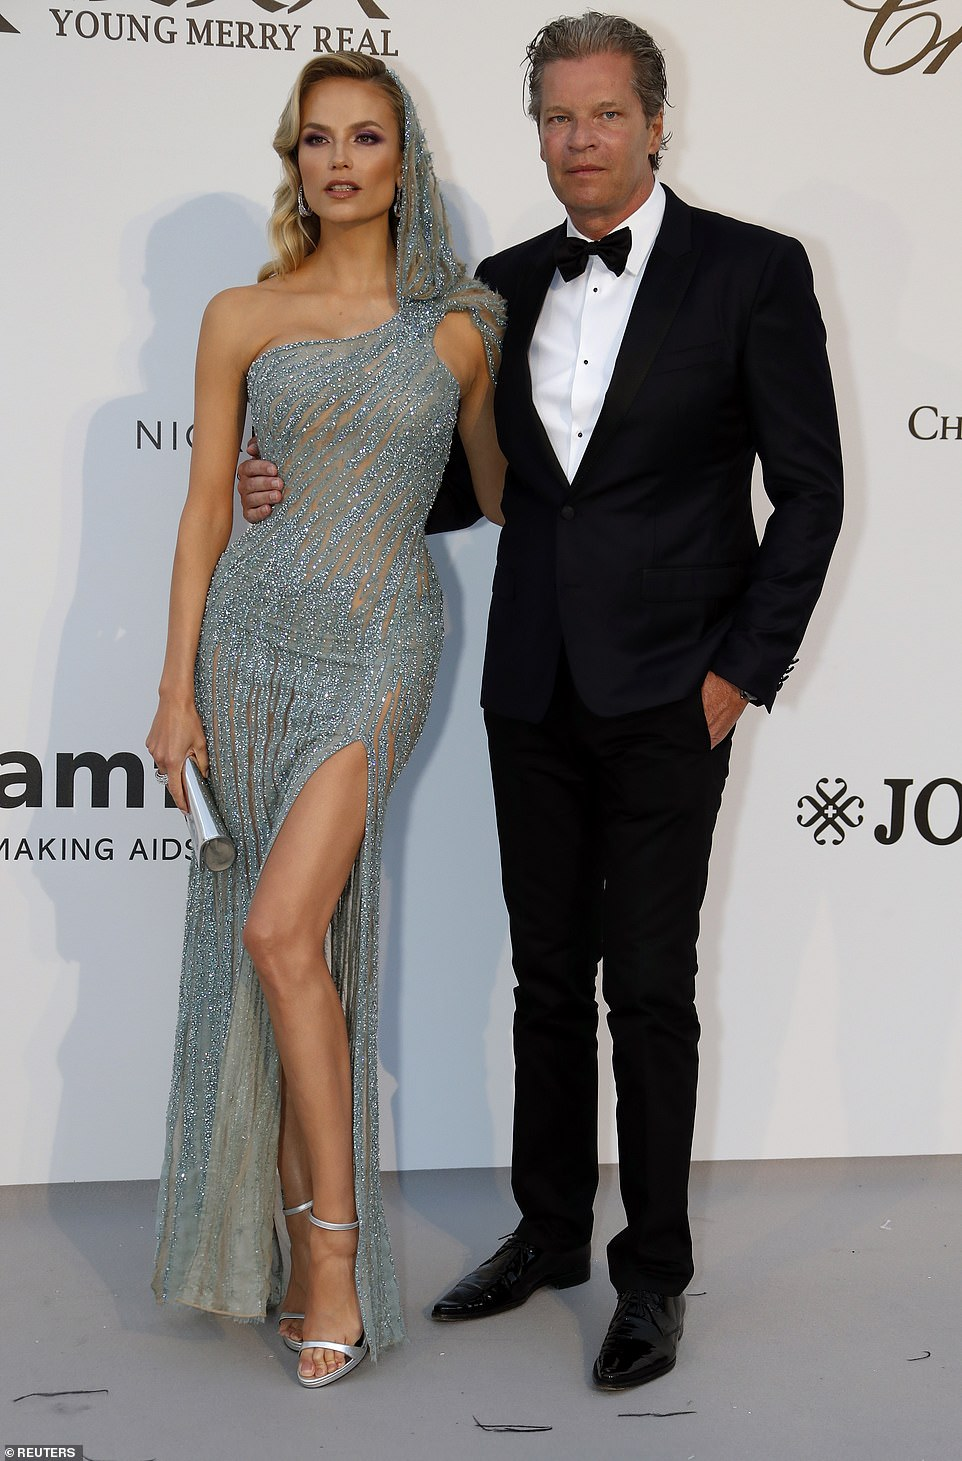 Hot couple: Natasha was soon joined by her handsome husband Peter Bakker